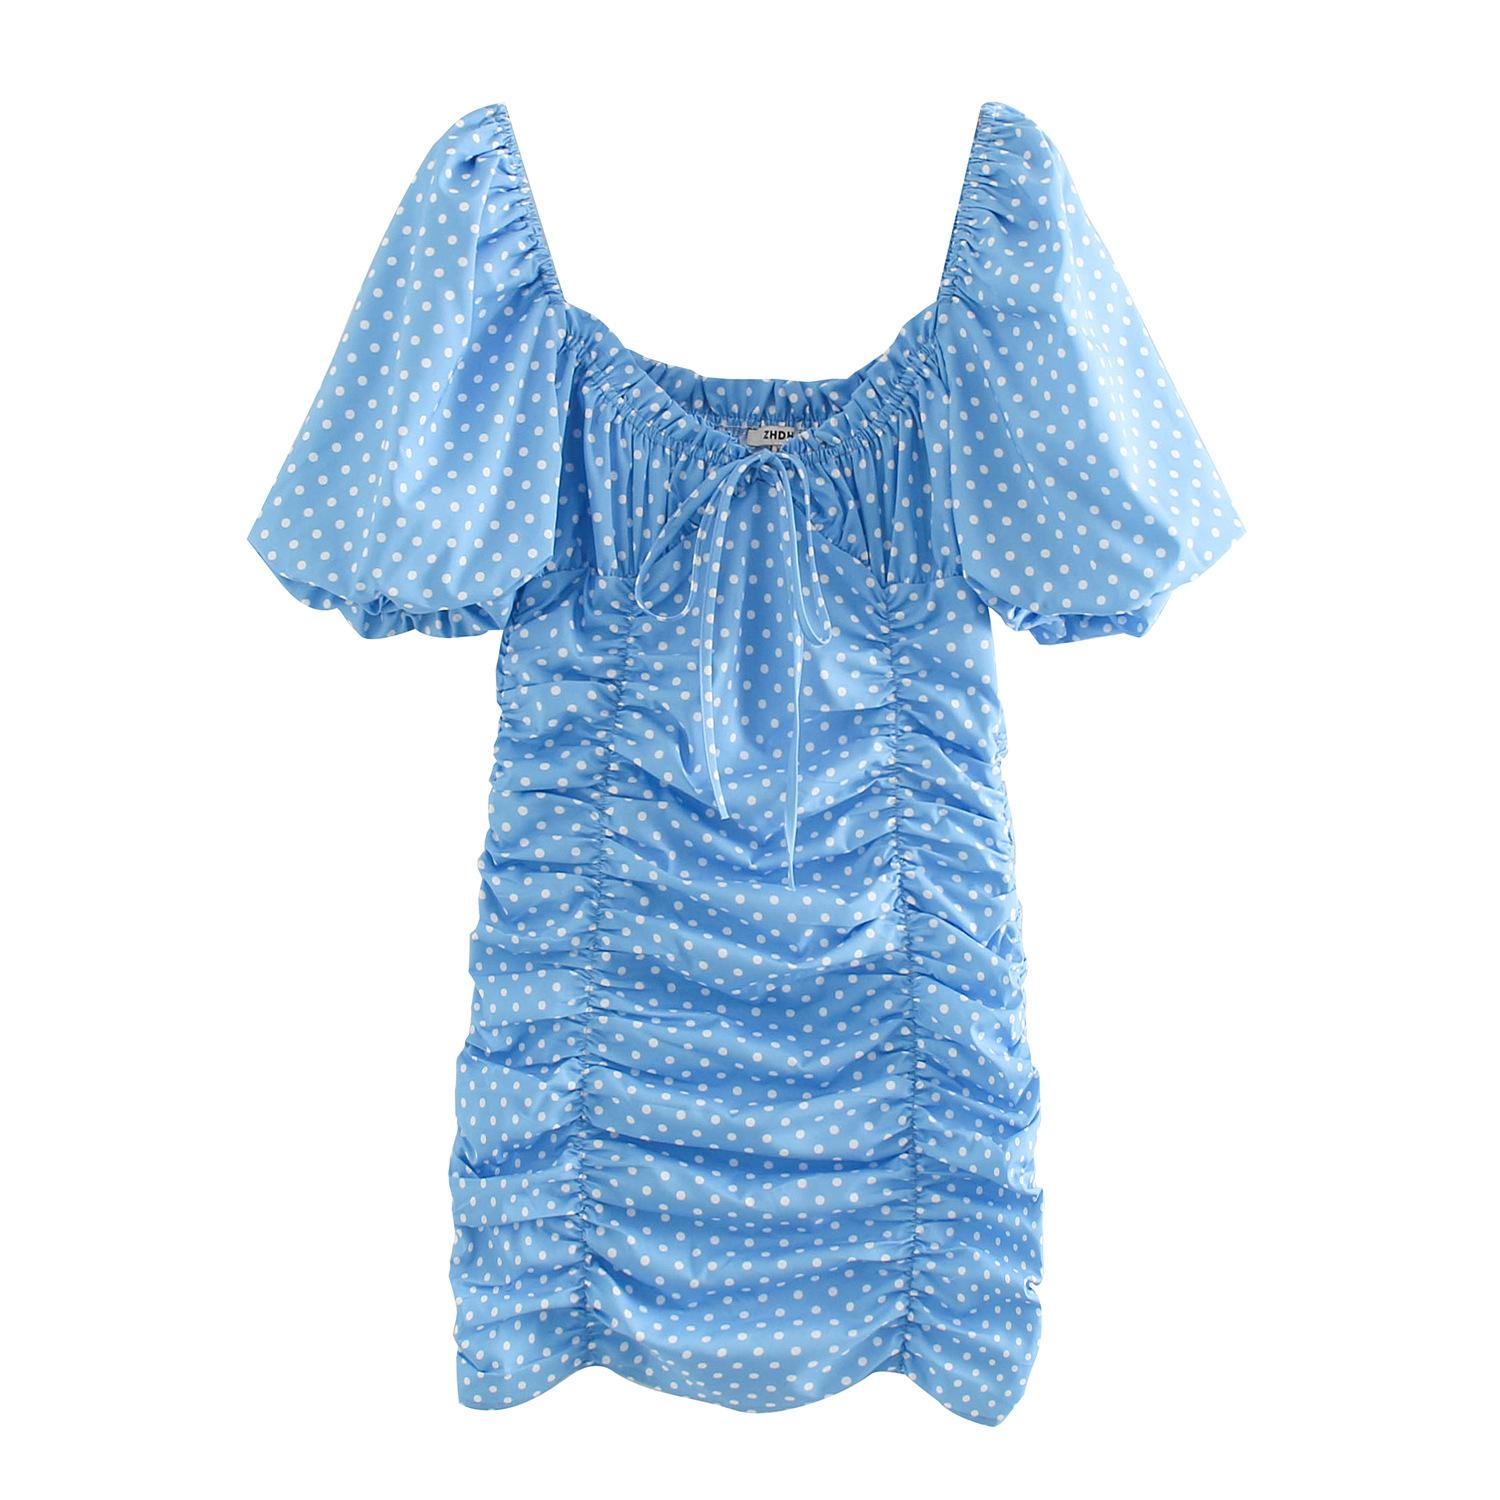 Women Blue Polka Dot Print Dresses 2020 New Vintage Square Neck Puff Sleeve Pleated Casual Mini Evening Party Dress Summer Boho Short Dress